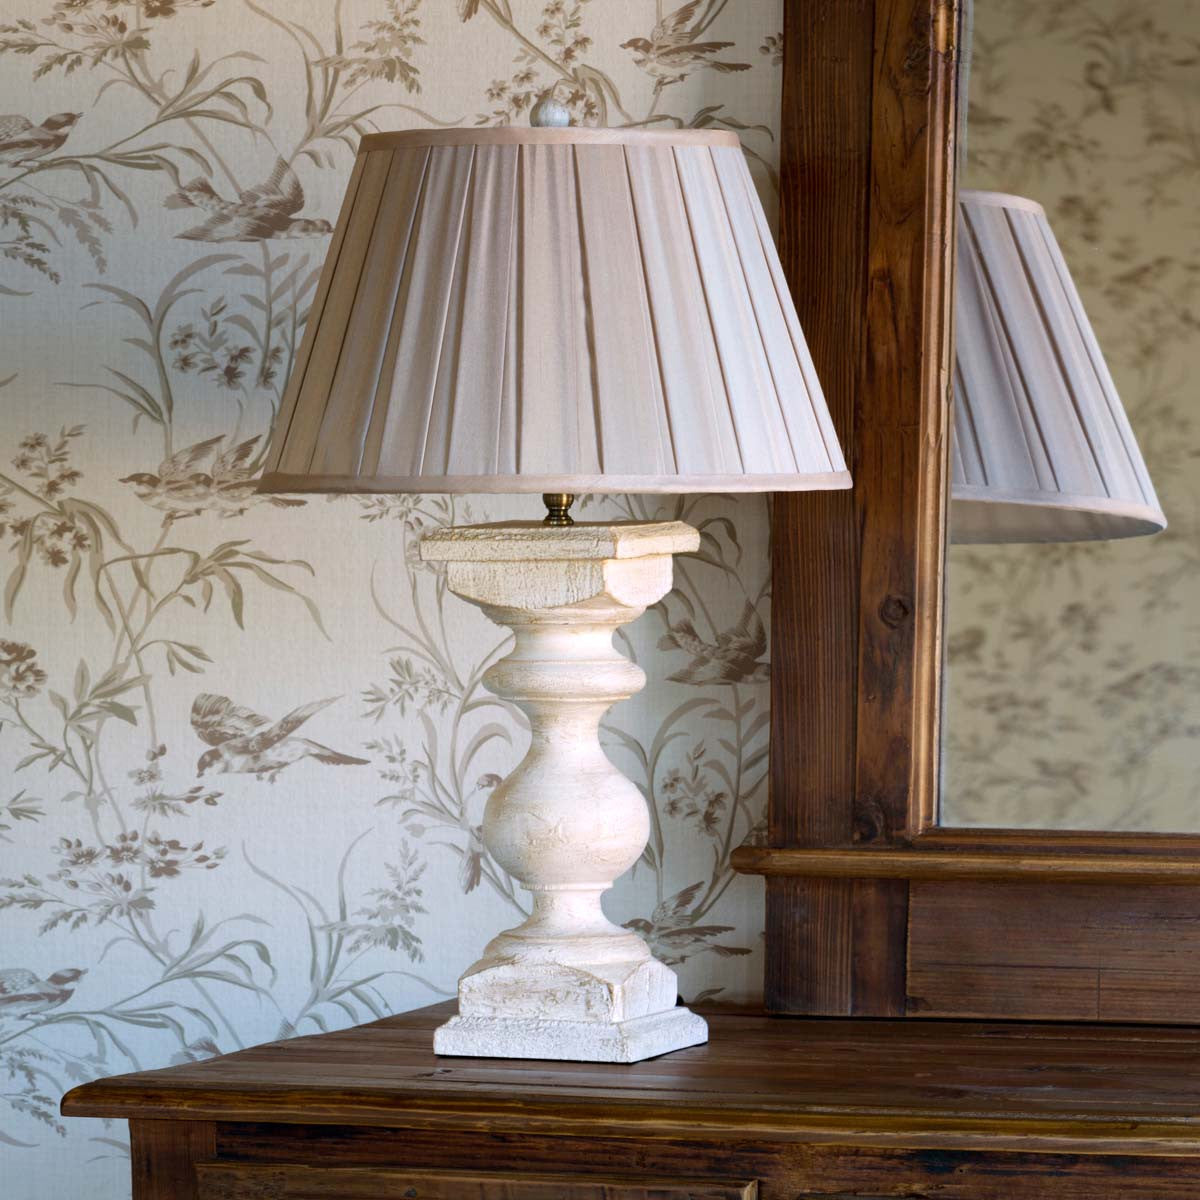 Antique White Balustrade Lamp